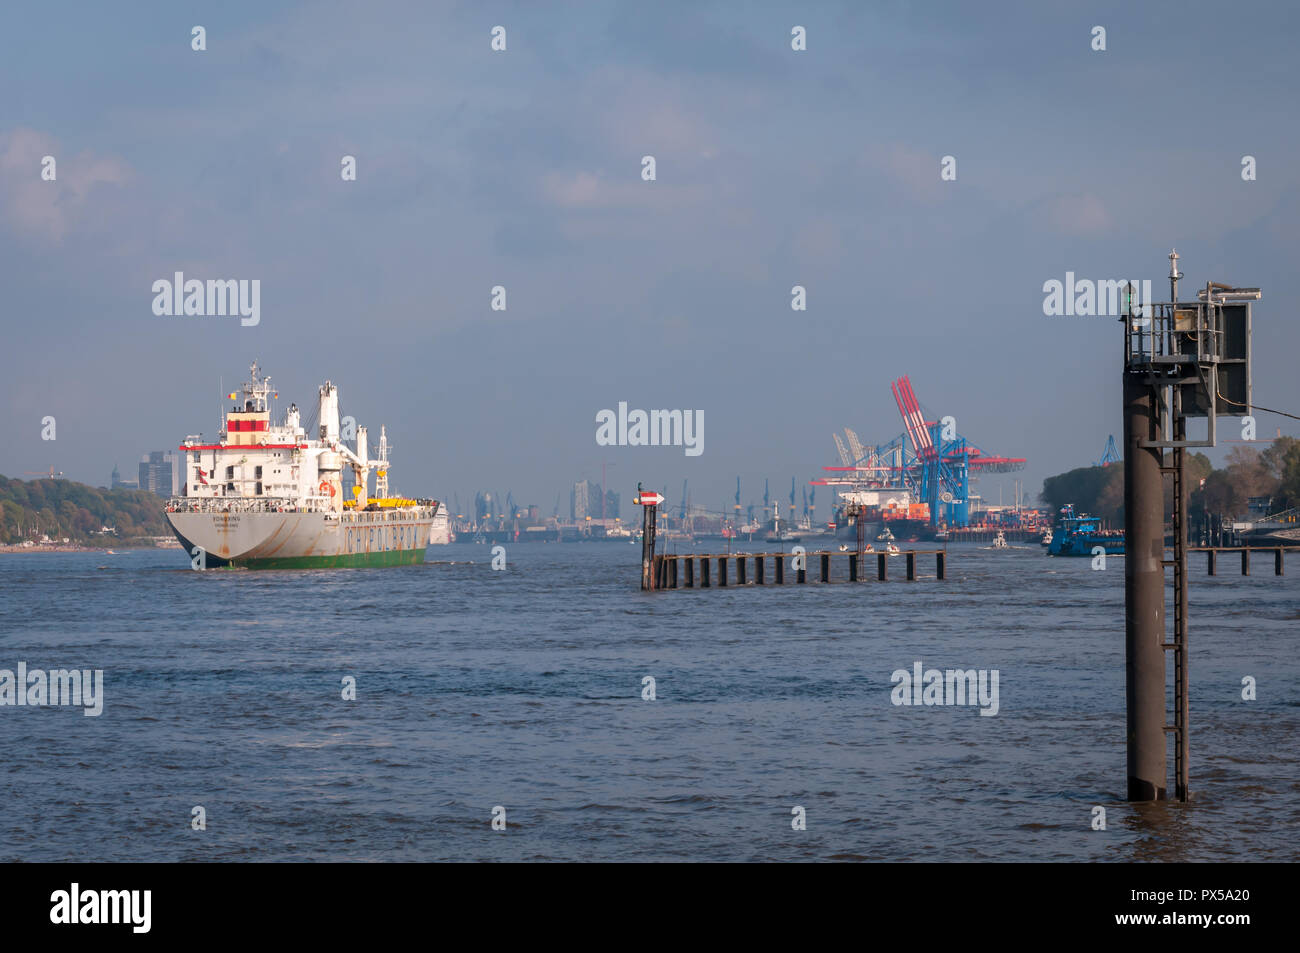 Hamburg, Germany - October 20, 2014: General cargo vessel YongXing arrives in Hamburg Harbor. YongXing belongs to the chinese-polish shipping line Chi - Stock Image